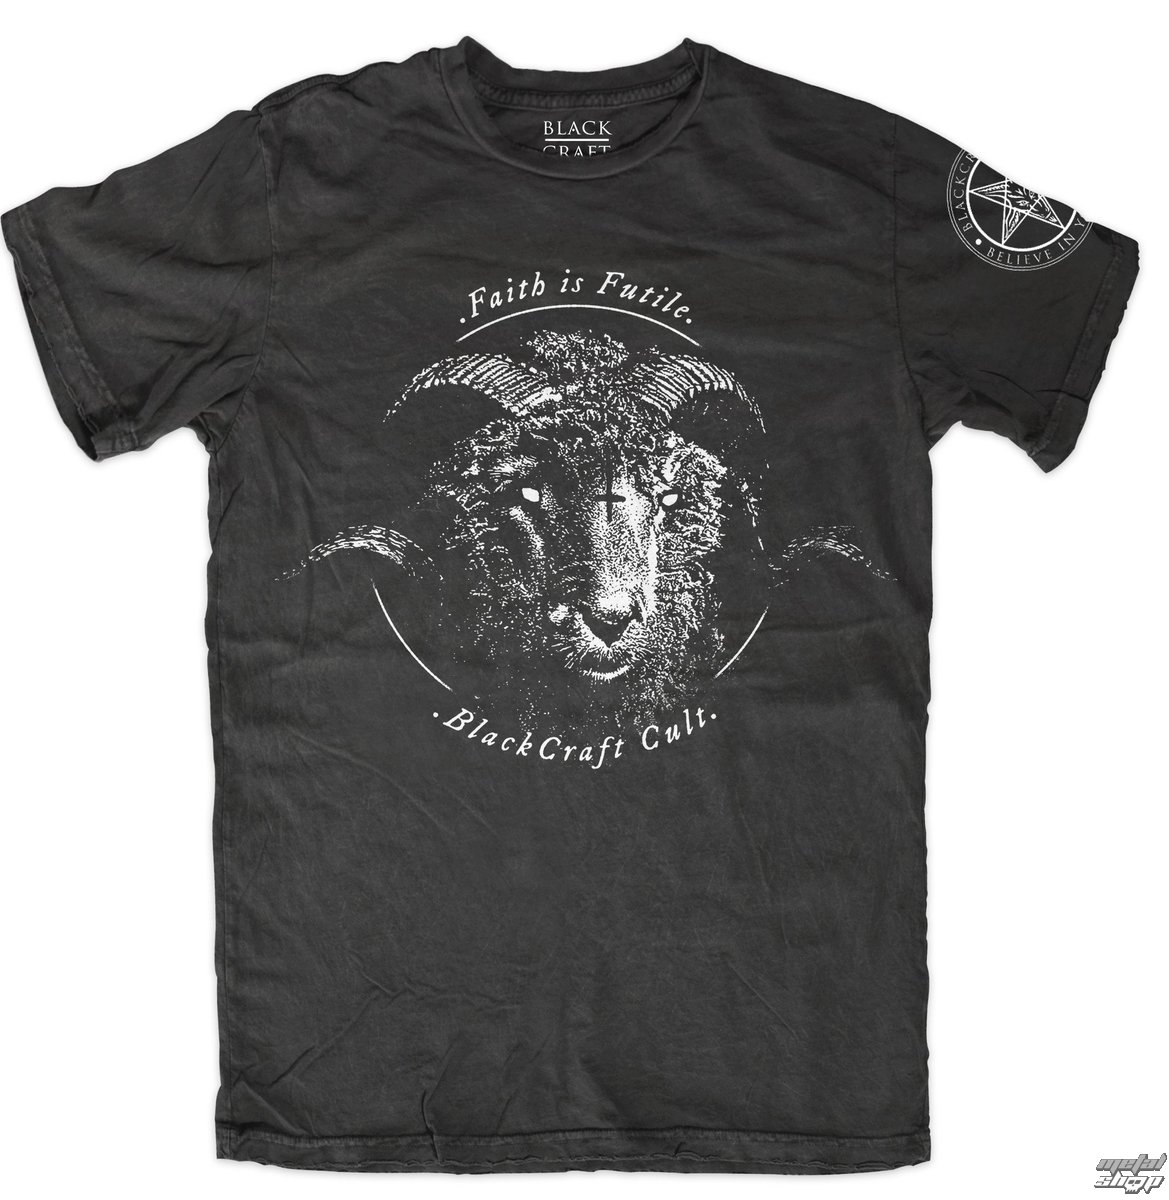 Herren T-Shirt - Faith Is Futile - BLACK CRAFT